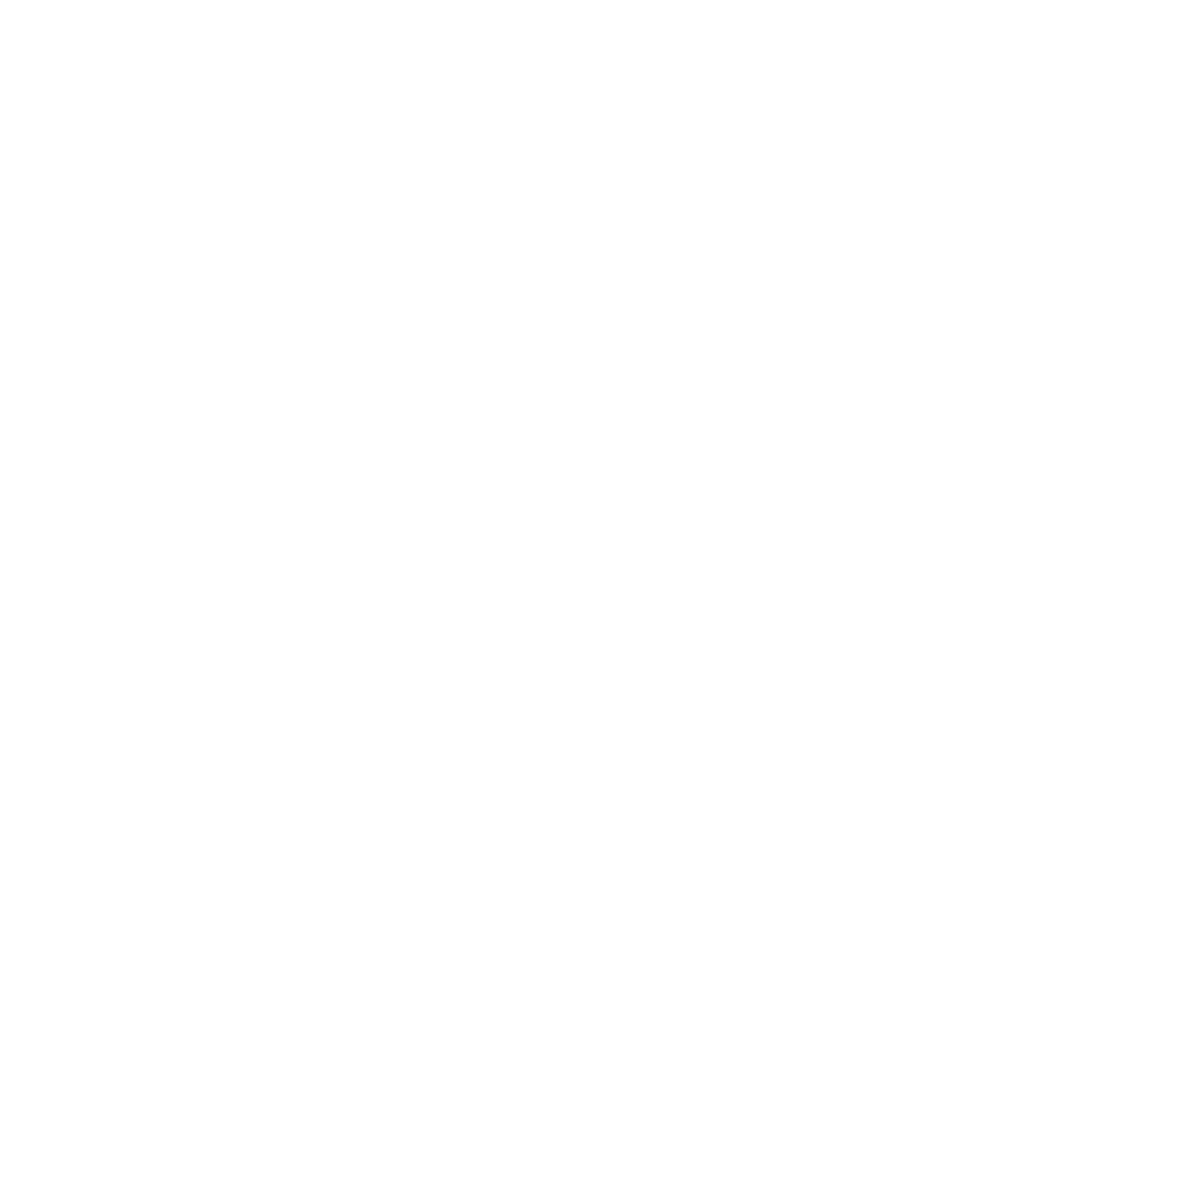 state of alaska commission on aging